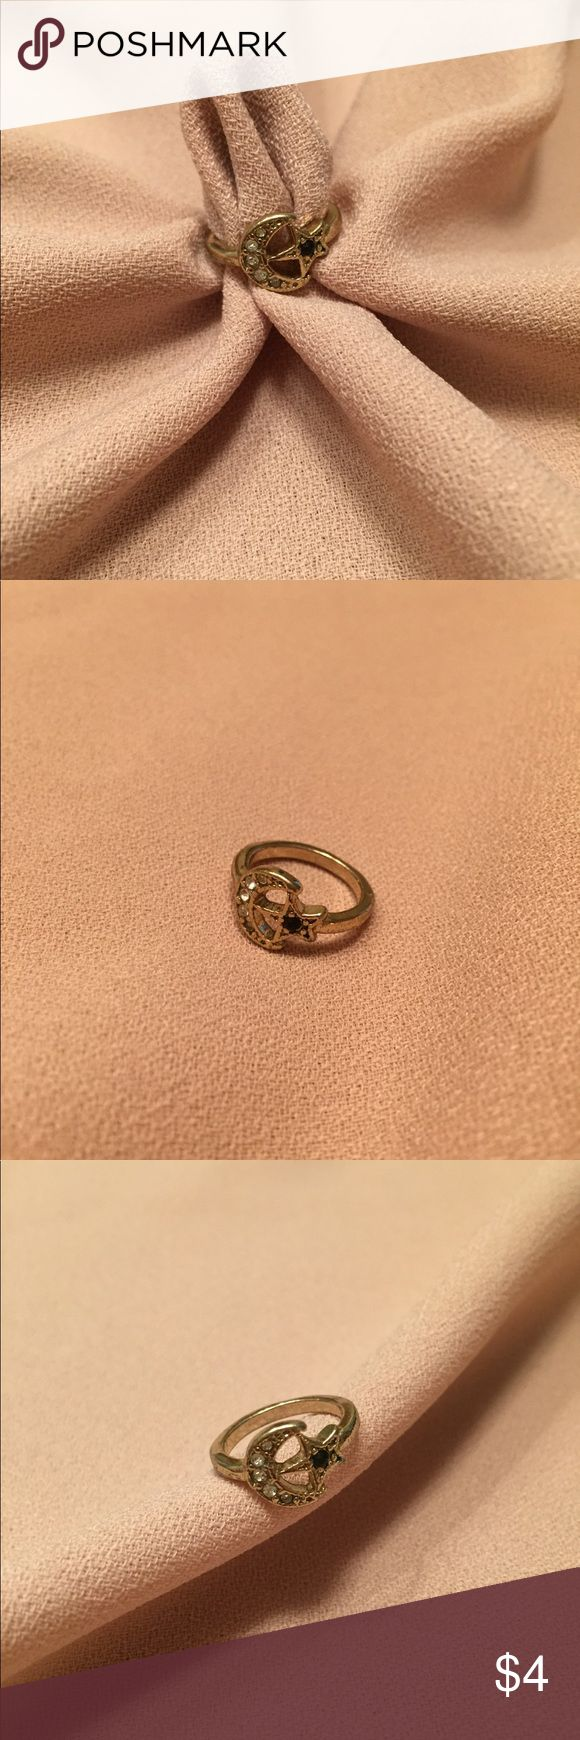 MOON AND STAR MIDI RING OR PINKY RING Cute and classic! This small but detailed ring is a great outfit topper and little show stopper. Charlotte Russe Jewelry Rings